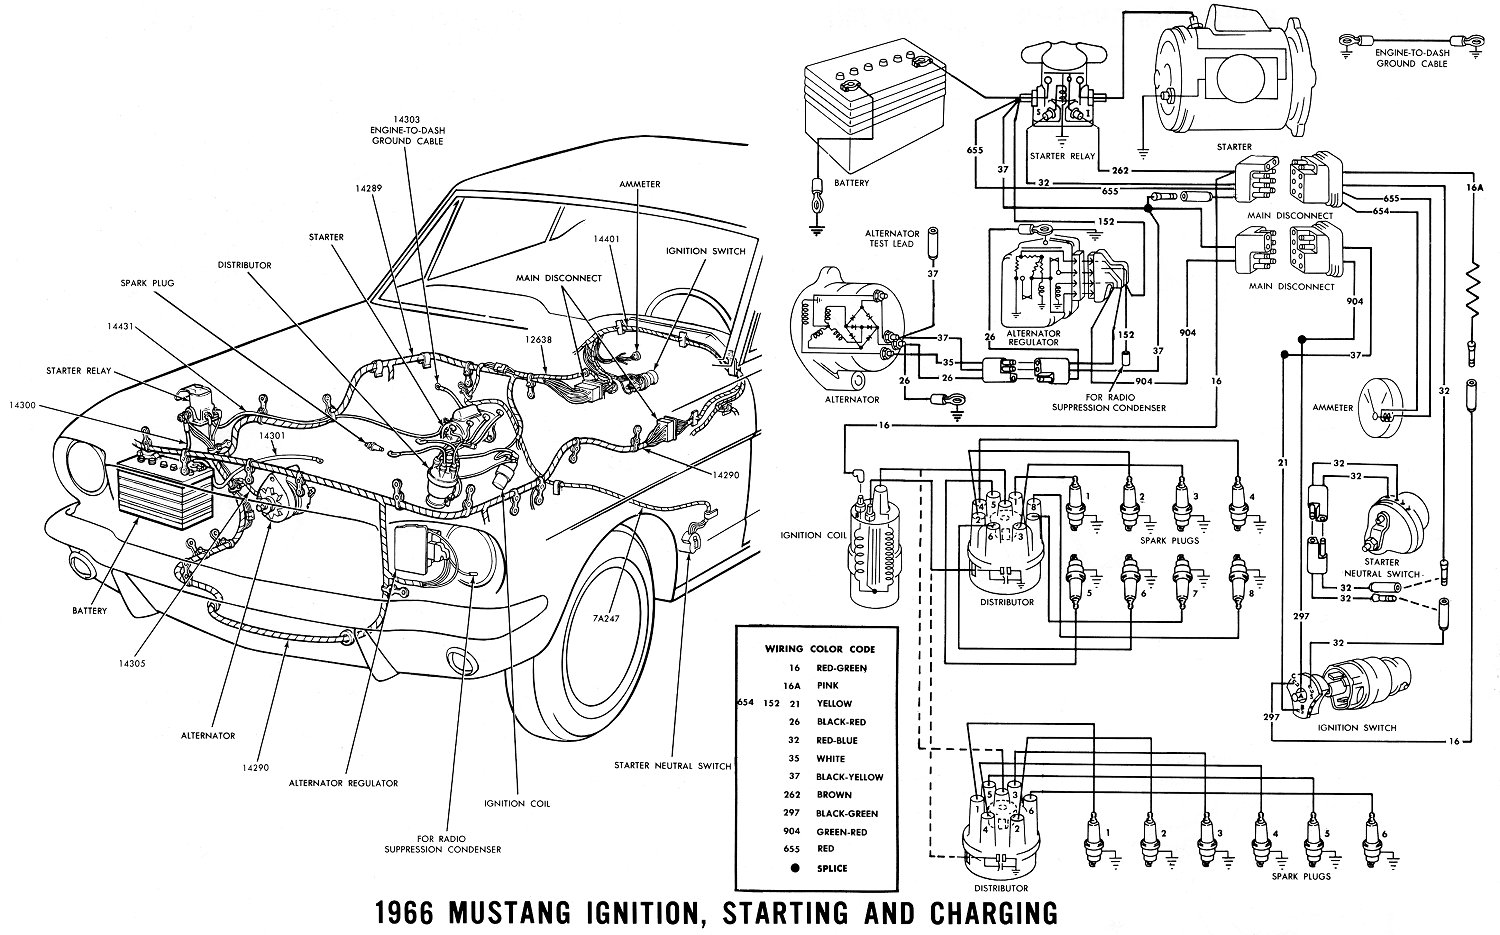 2002 Ford 73 Fuel System Diagram Great Design Of Wiring 1988 Ranger Lelu S 66 Mustang 1966 Diagrams 1989 Diesel